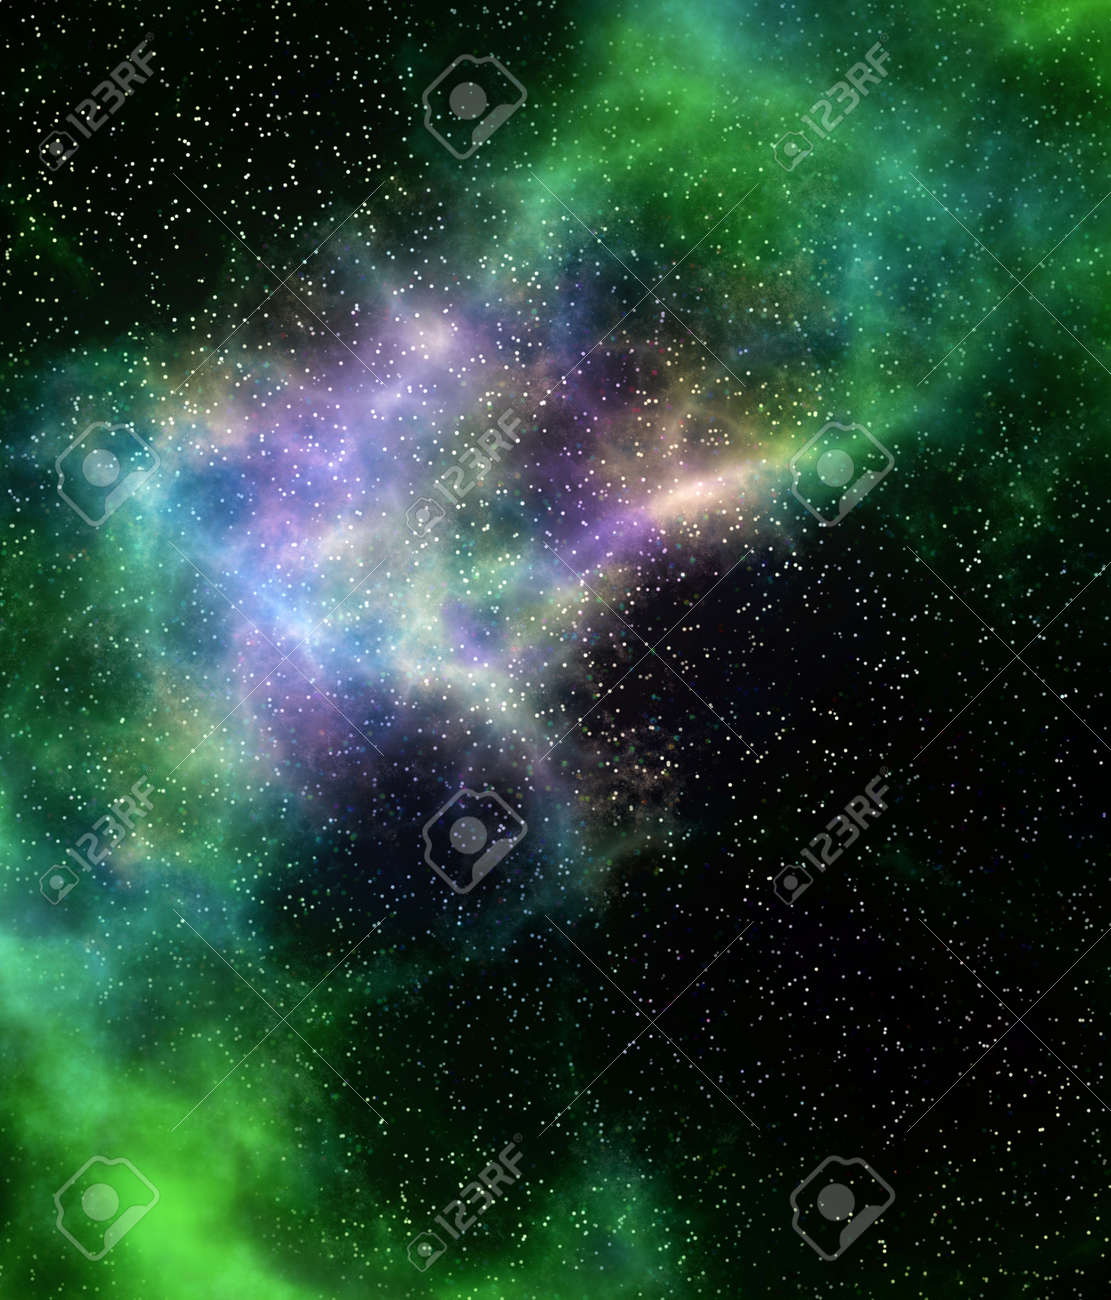 deep outer space gas cloud nebula galaxy and stars stock photo deep outer space gas cloud nebula galaxy and stars stock photo 9420824